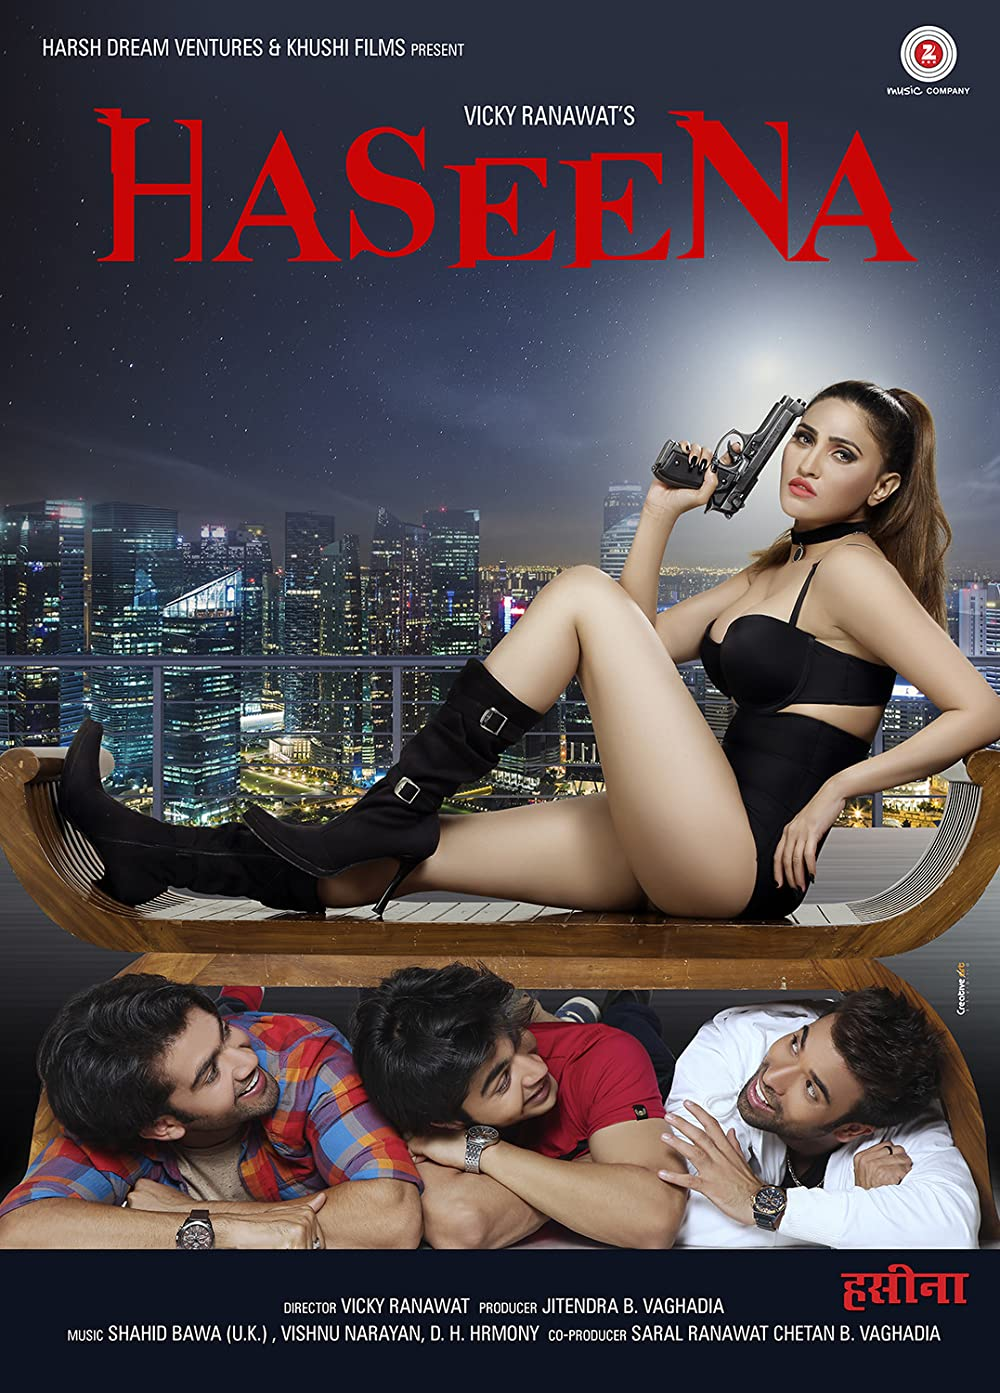 18+ Haseena 2018 Hindi 1080p HDRip 1.8GB Download